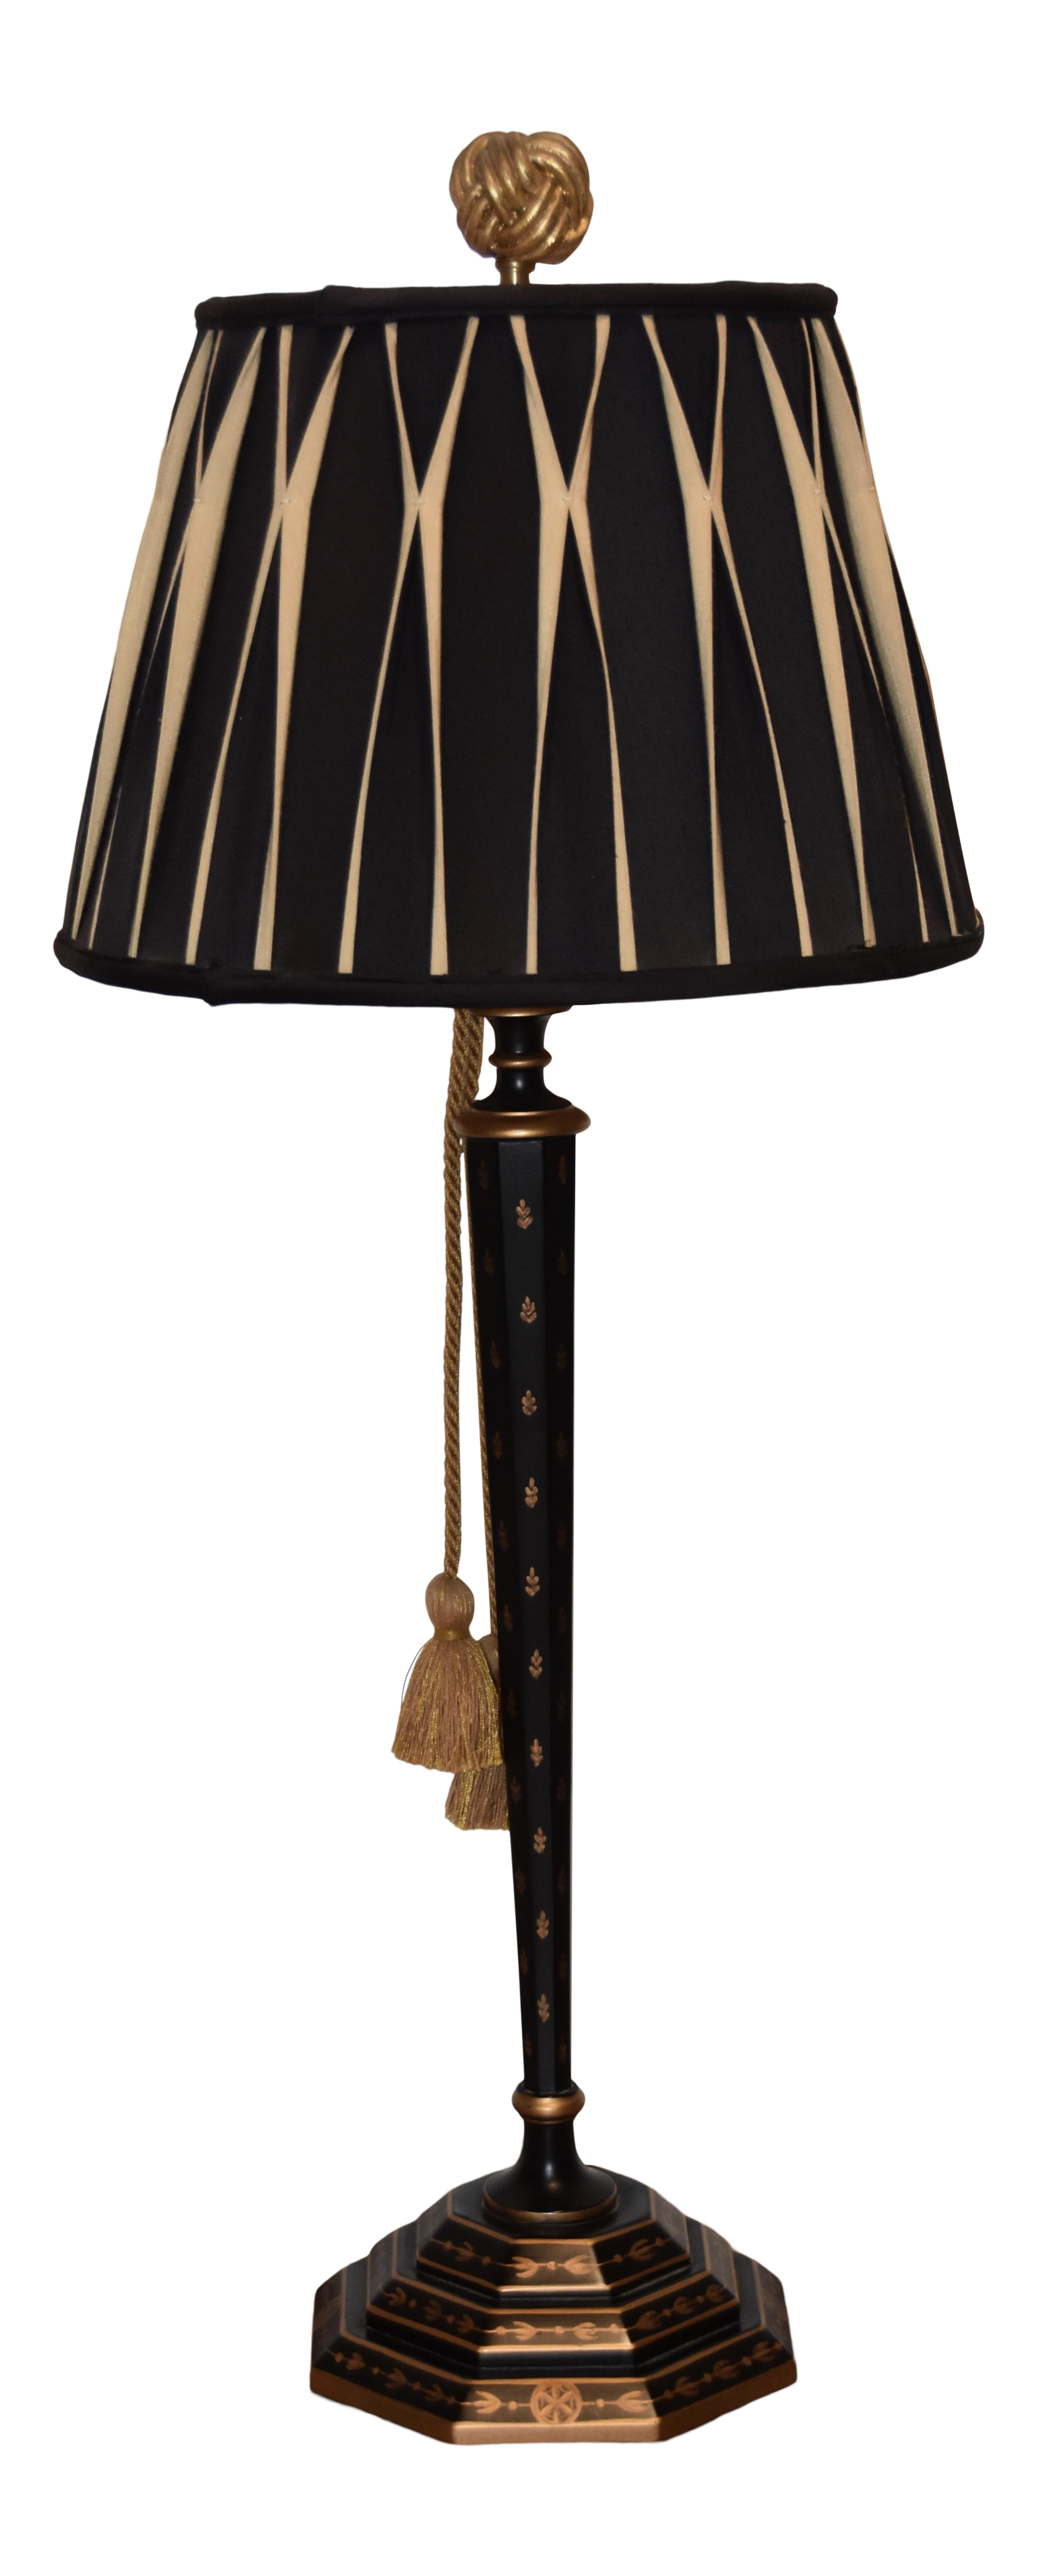 Chelsea House Regent Buffet Table Lamp With Shade Lamp Table